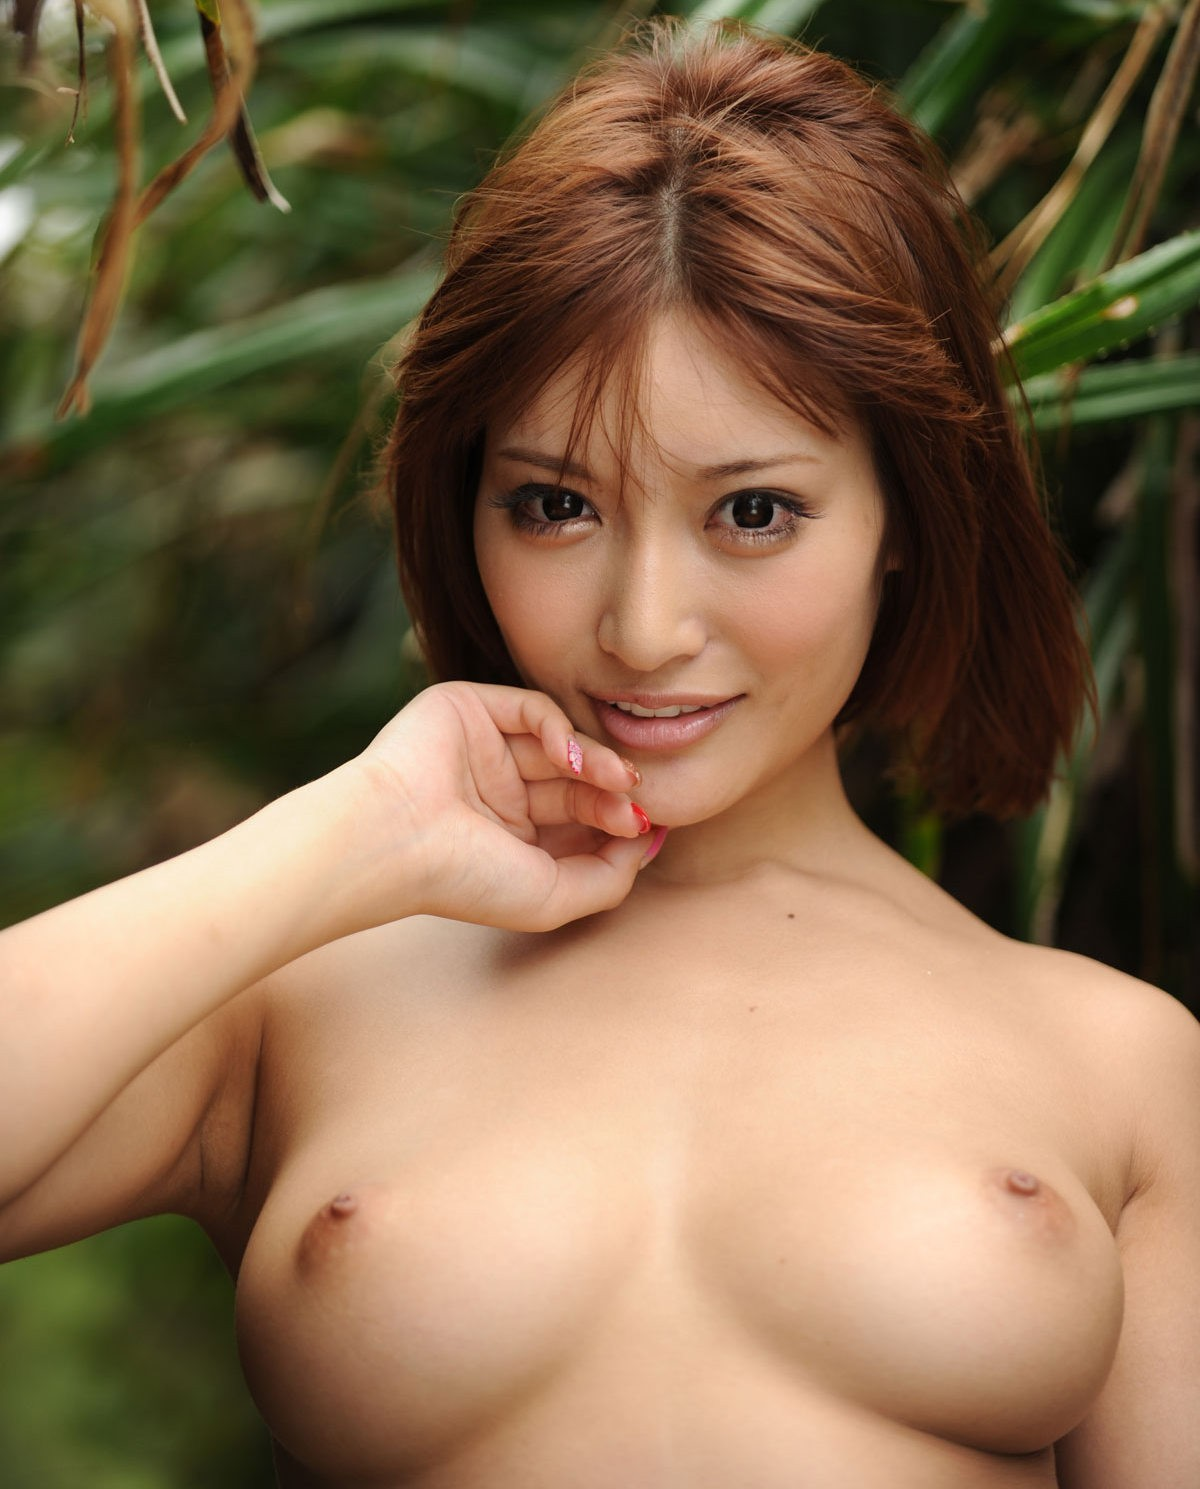 Hot Busty Nude Asian Girls, Hot Nude Asian Girls 65-7529